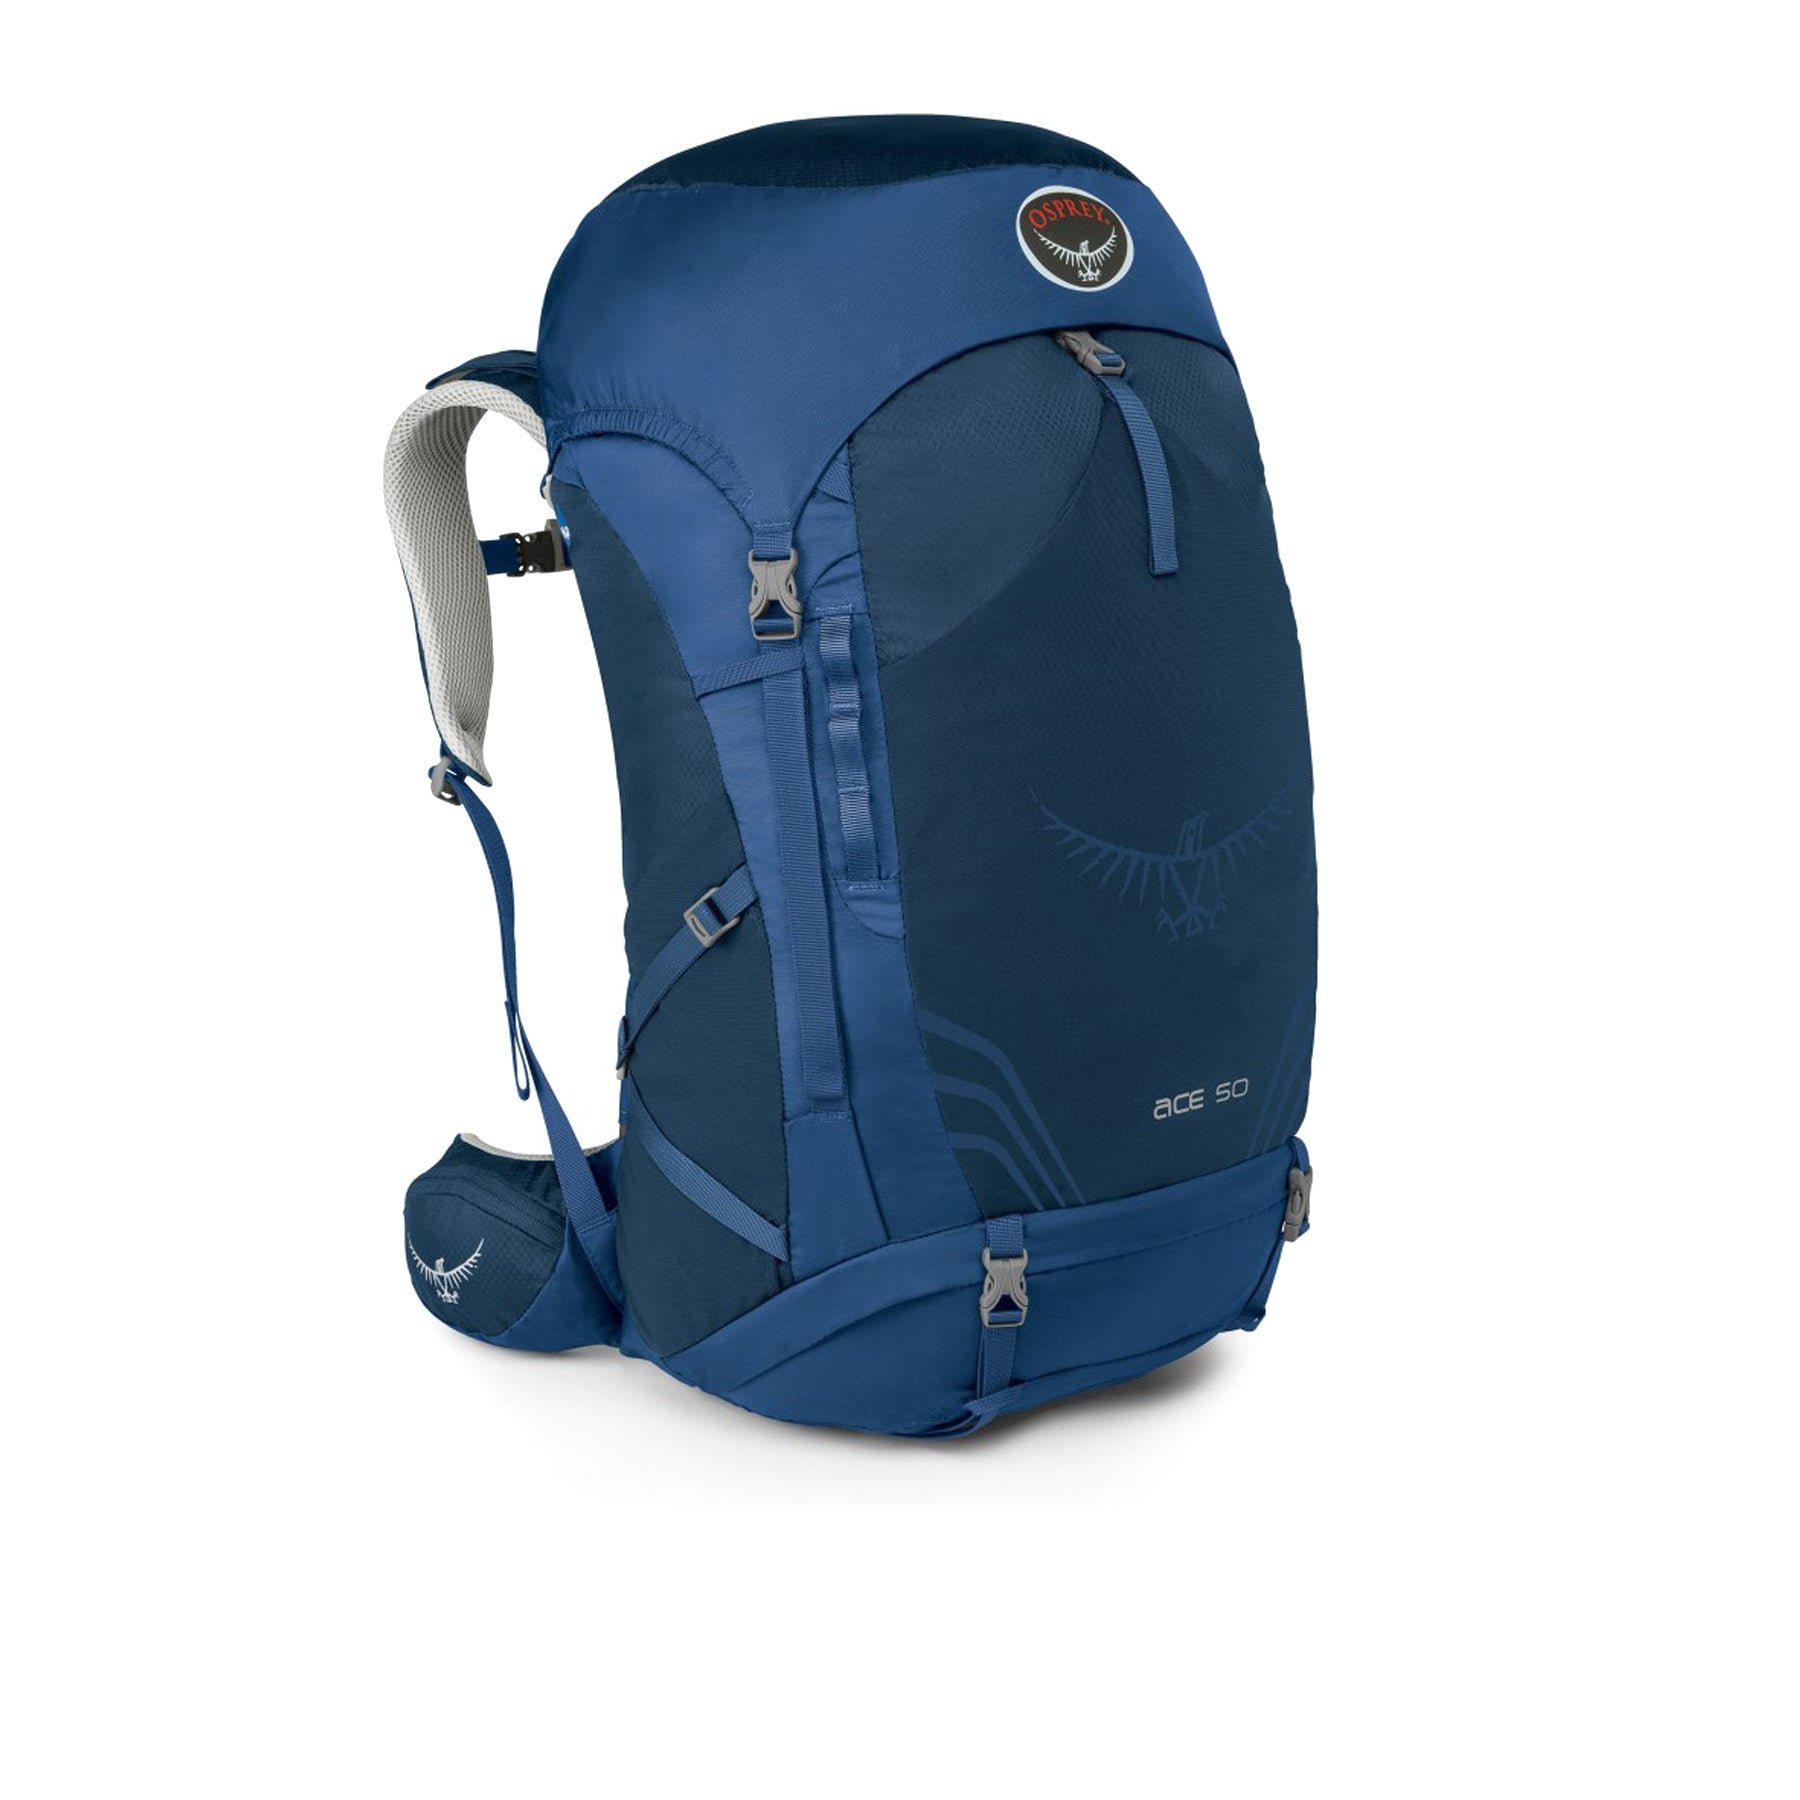 Osprey Ace 50 Kids Hiking Backpack - Night Sky Blue